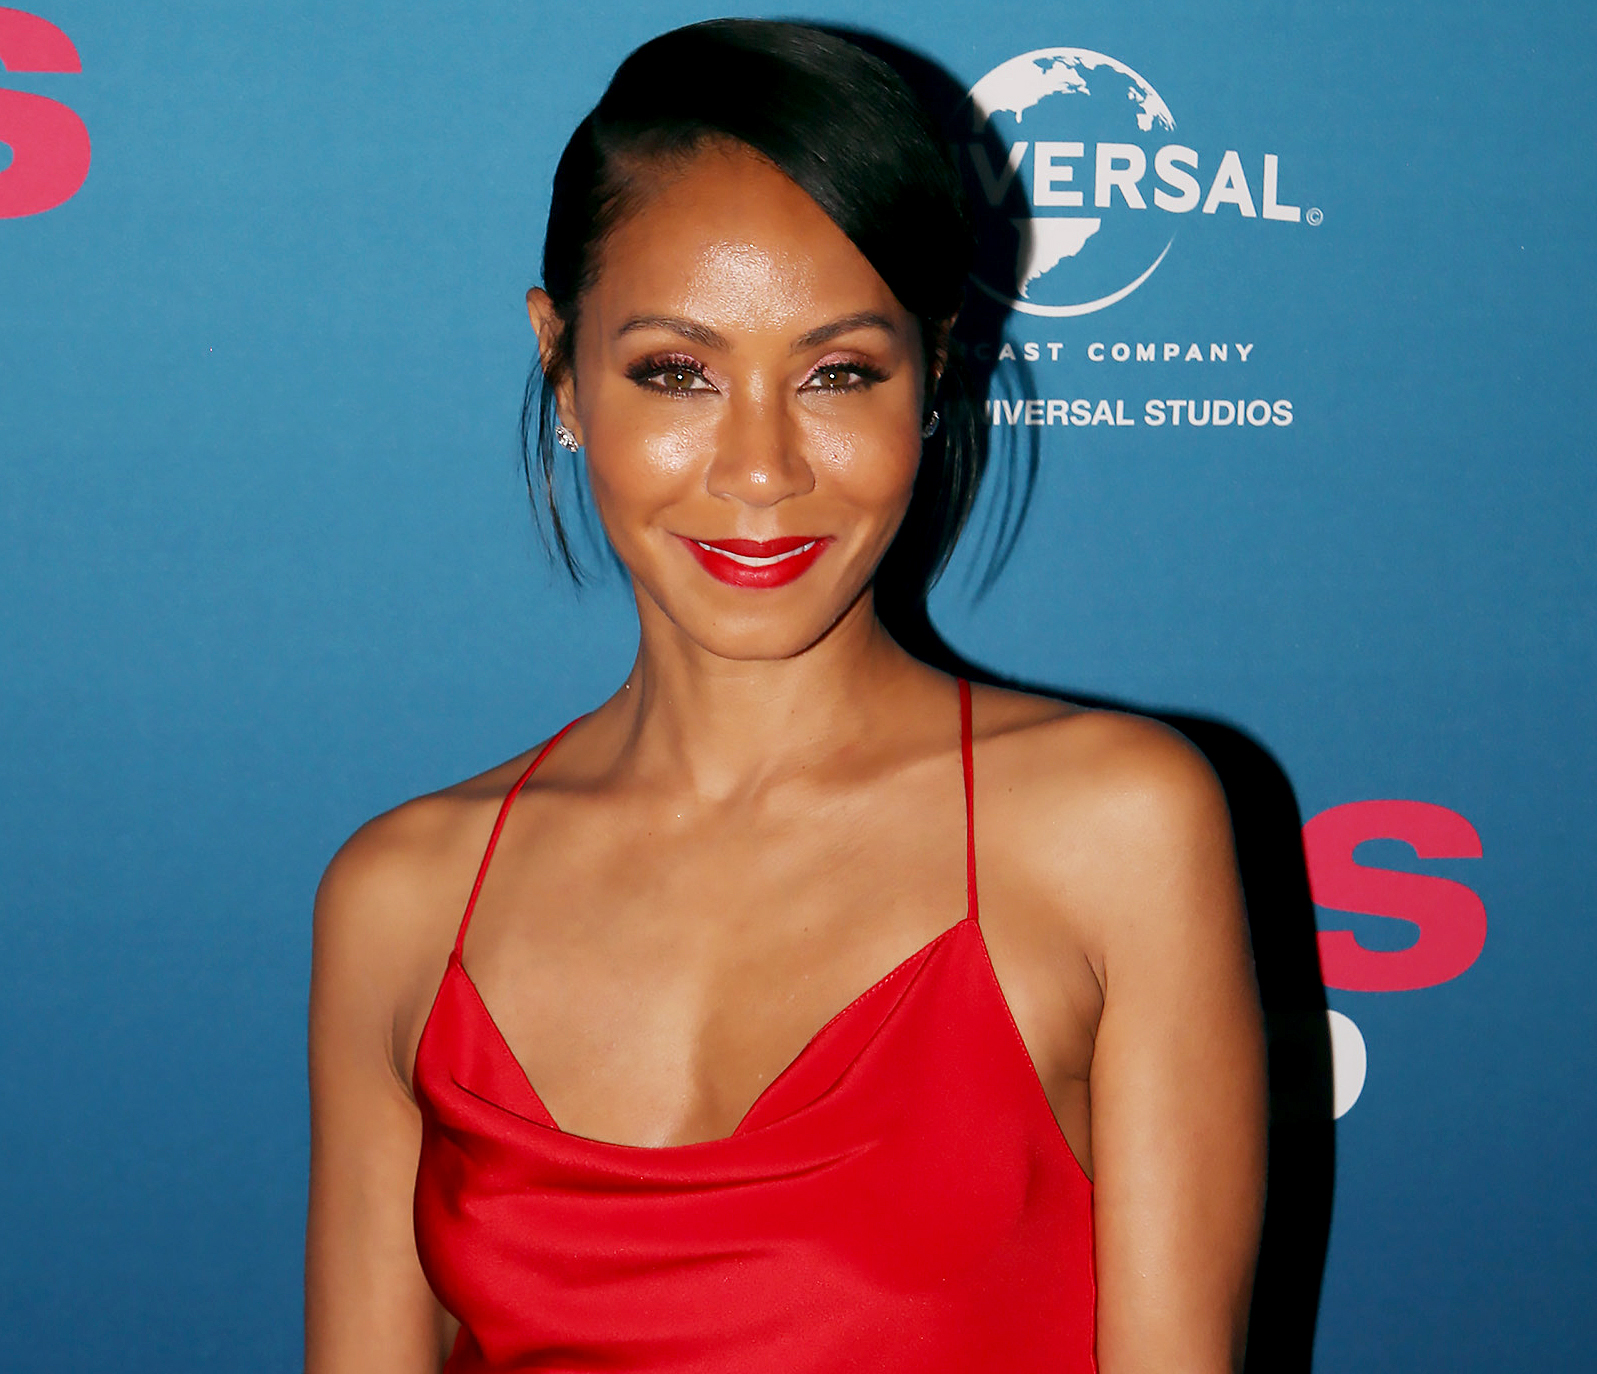 Jada Pinkett Smith Gets Candid About Her Severe Breakdown - 'I Was Suicidal'